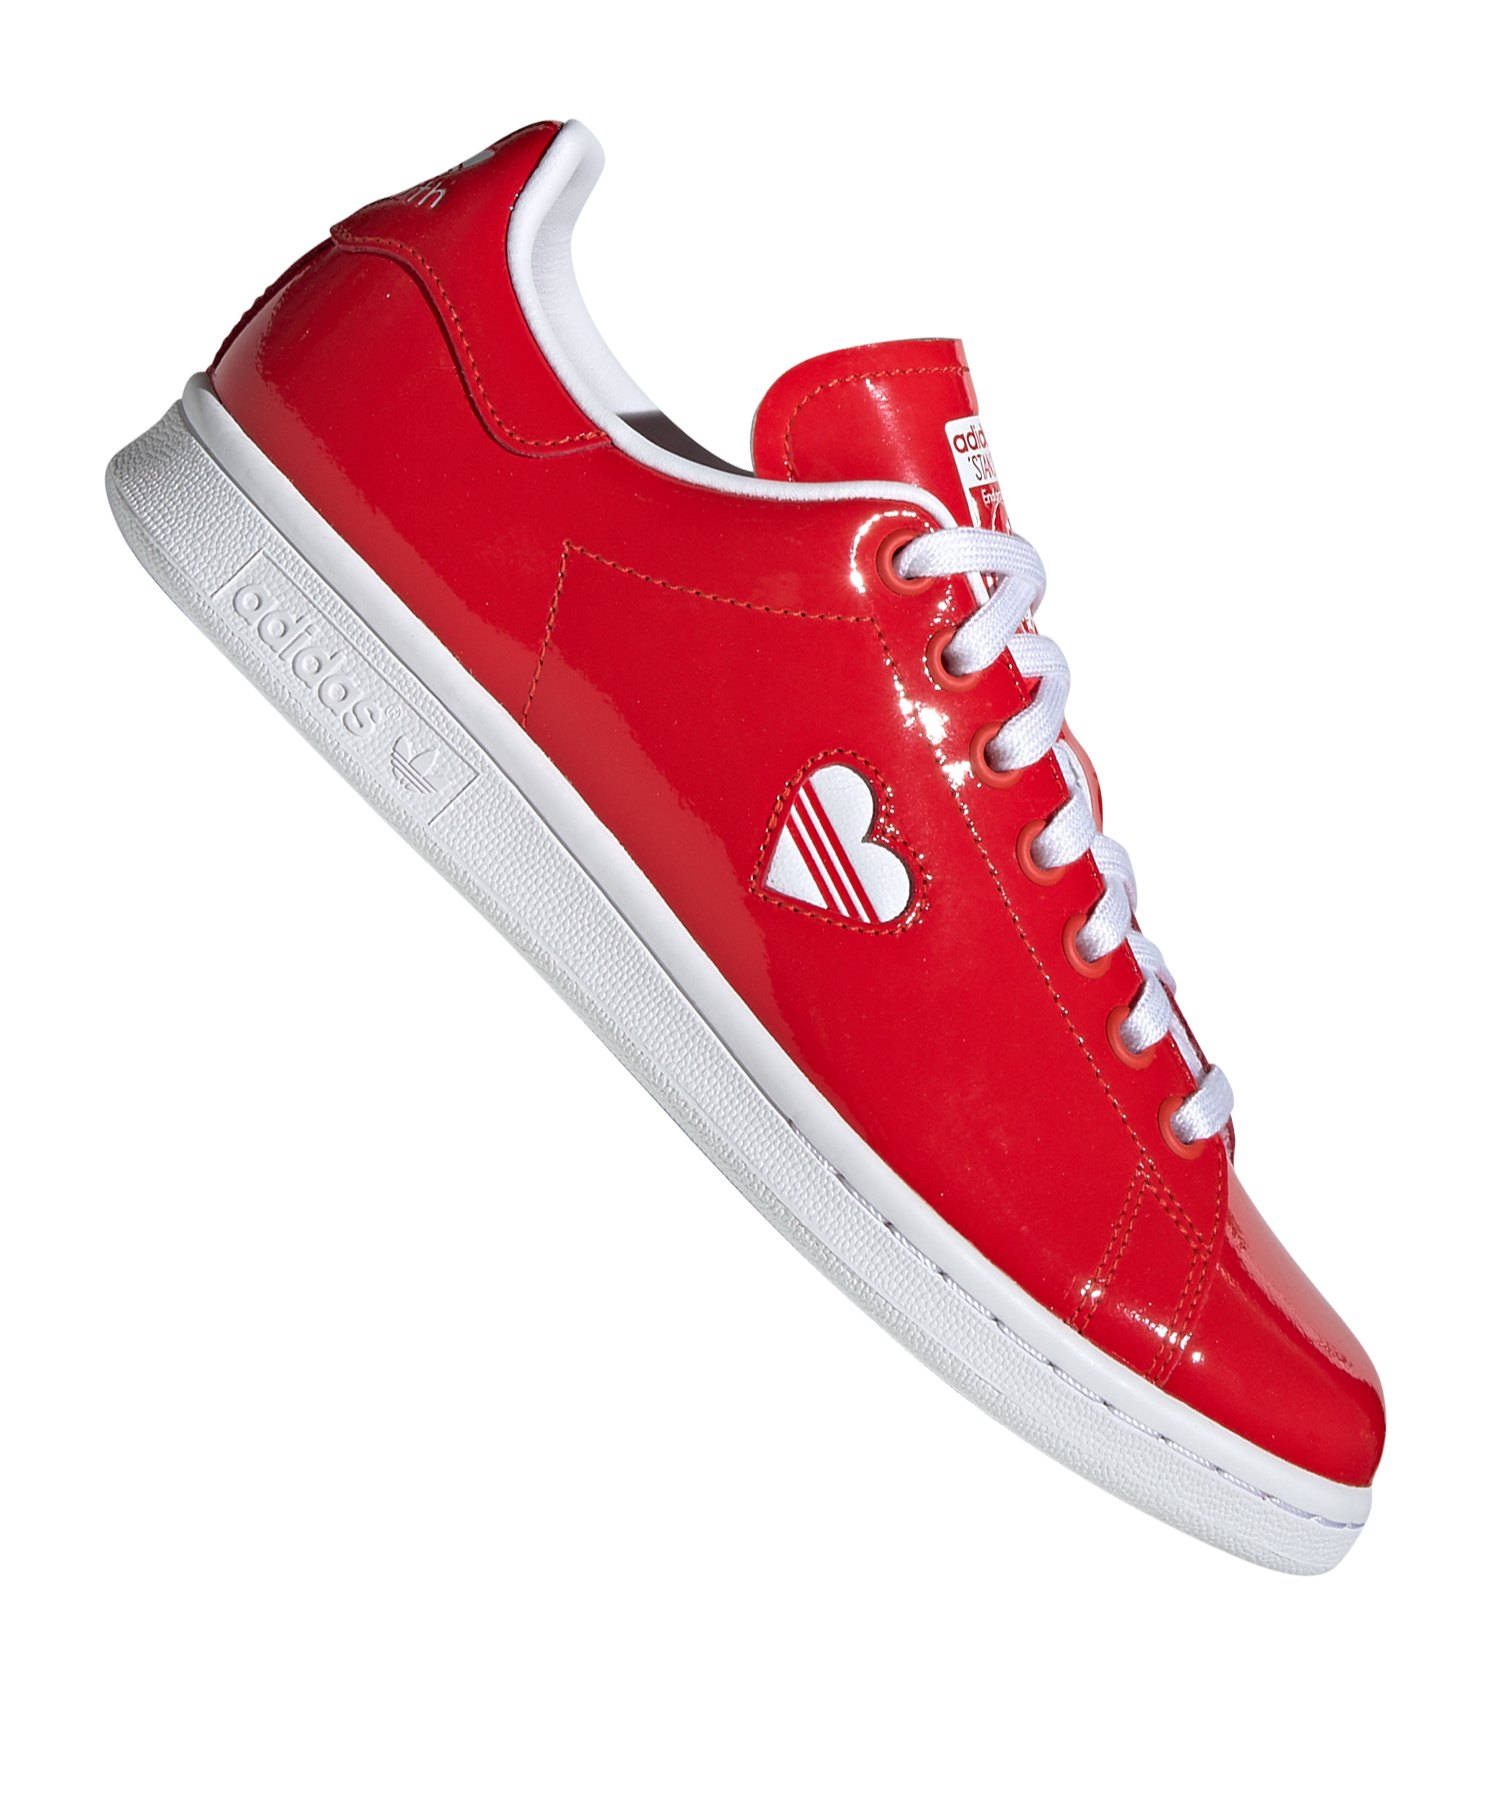 reputable site e513f 683a0 adidas Originals Stan Smith Sneaker Damen Rot